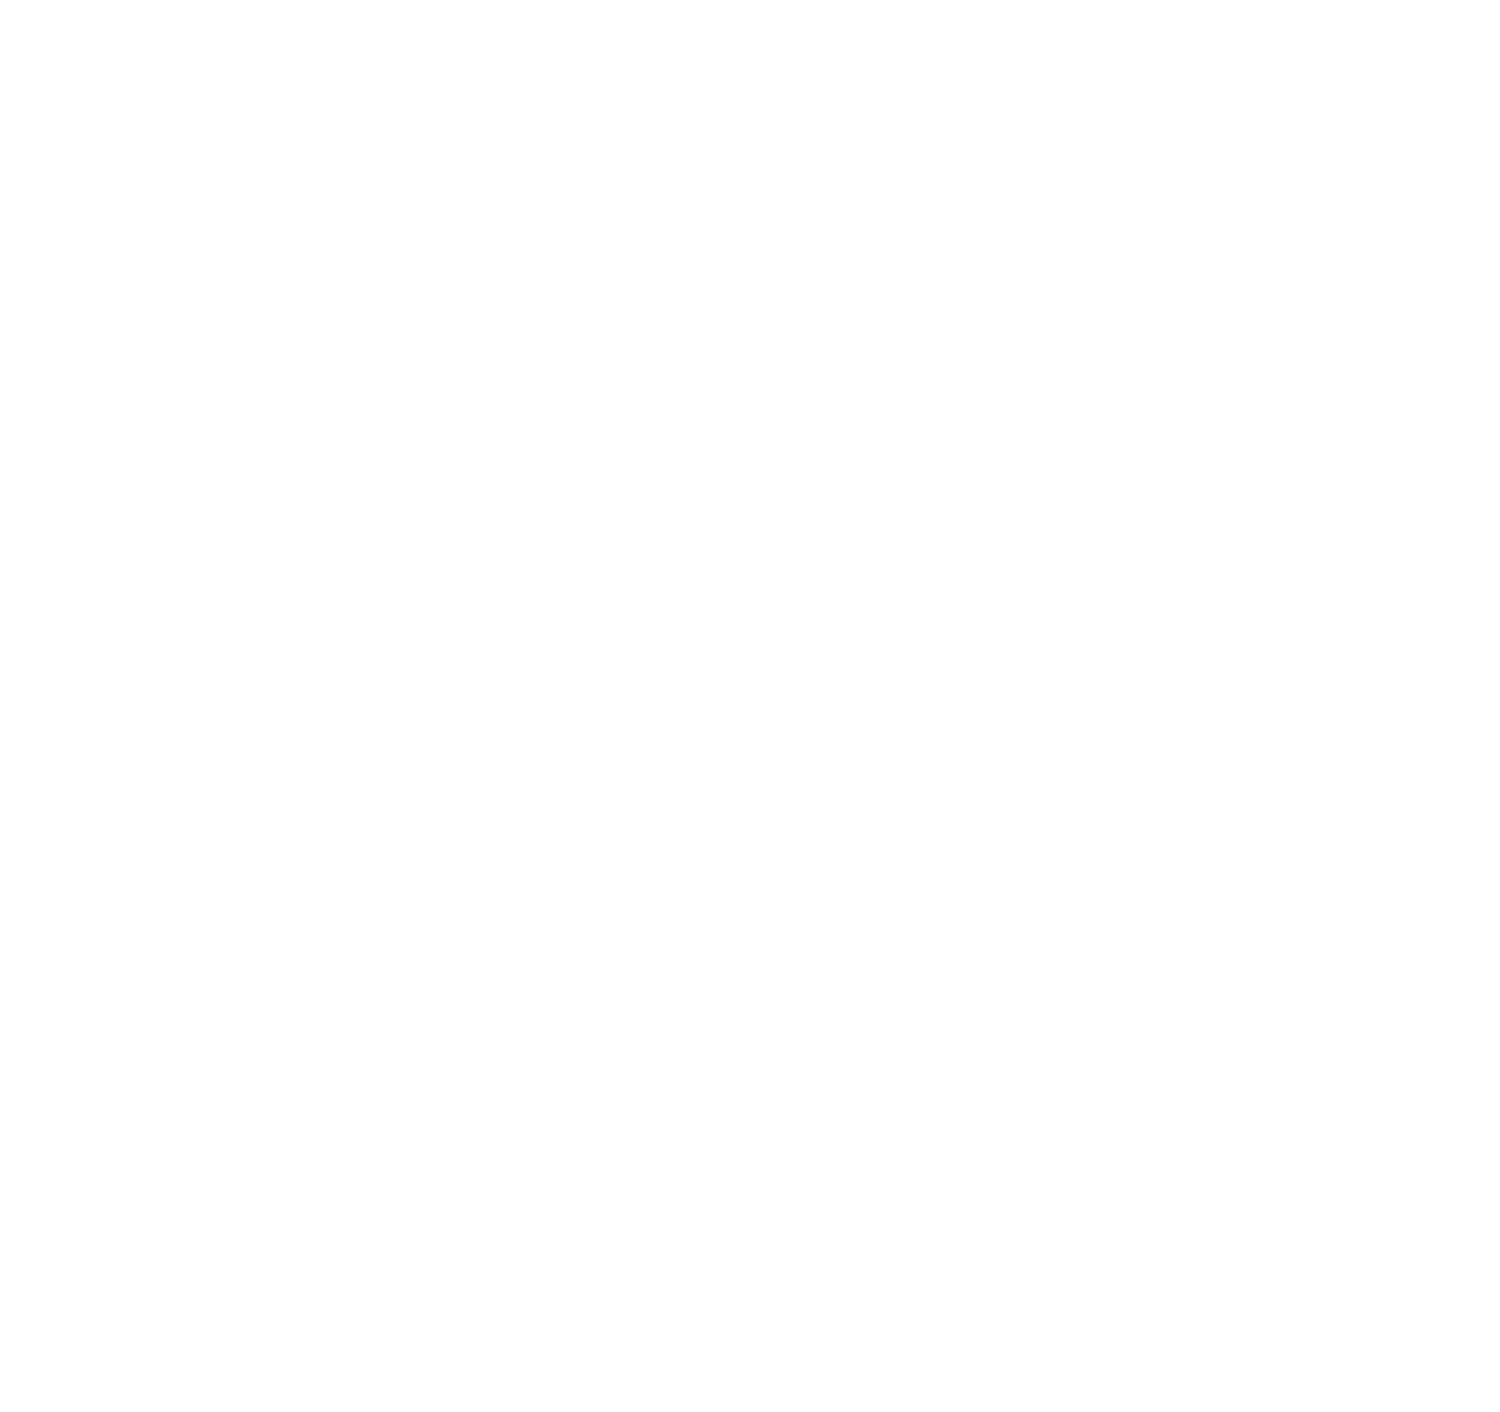 THE ALLORA